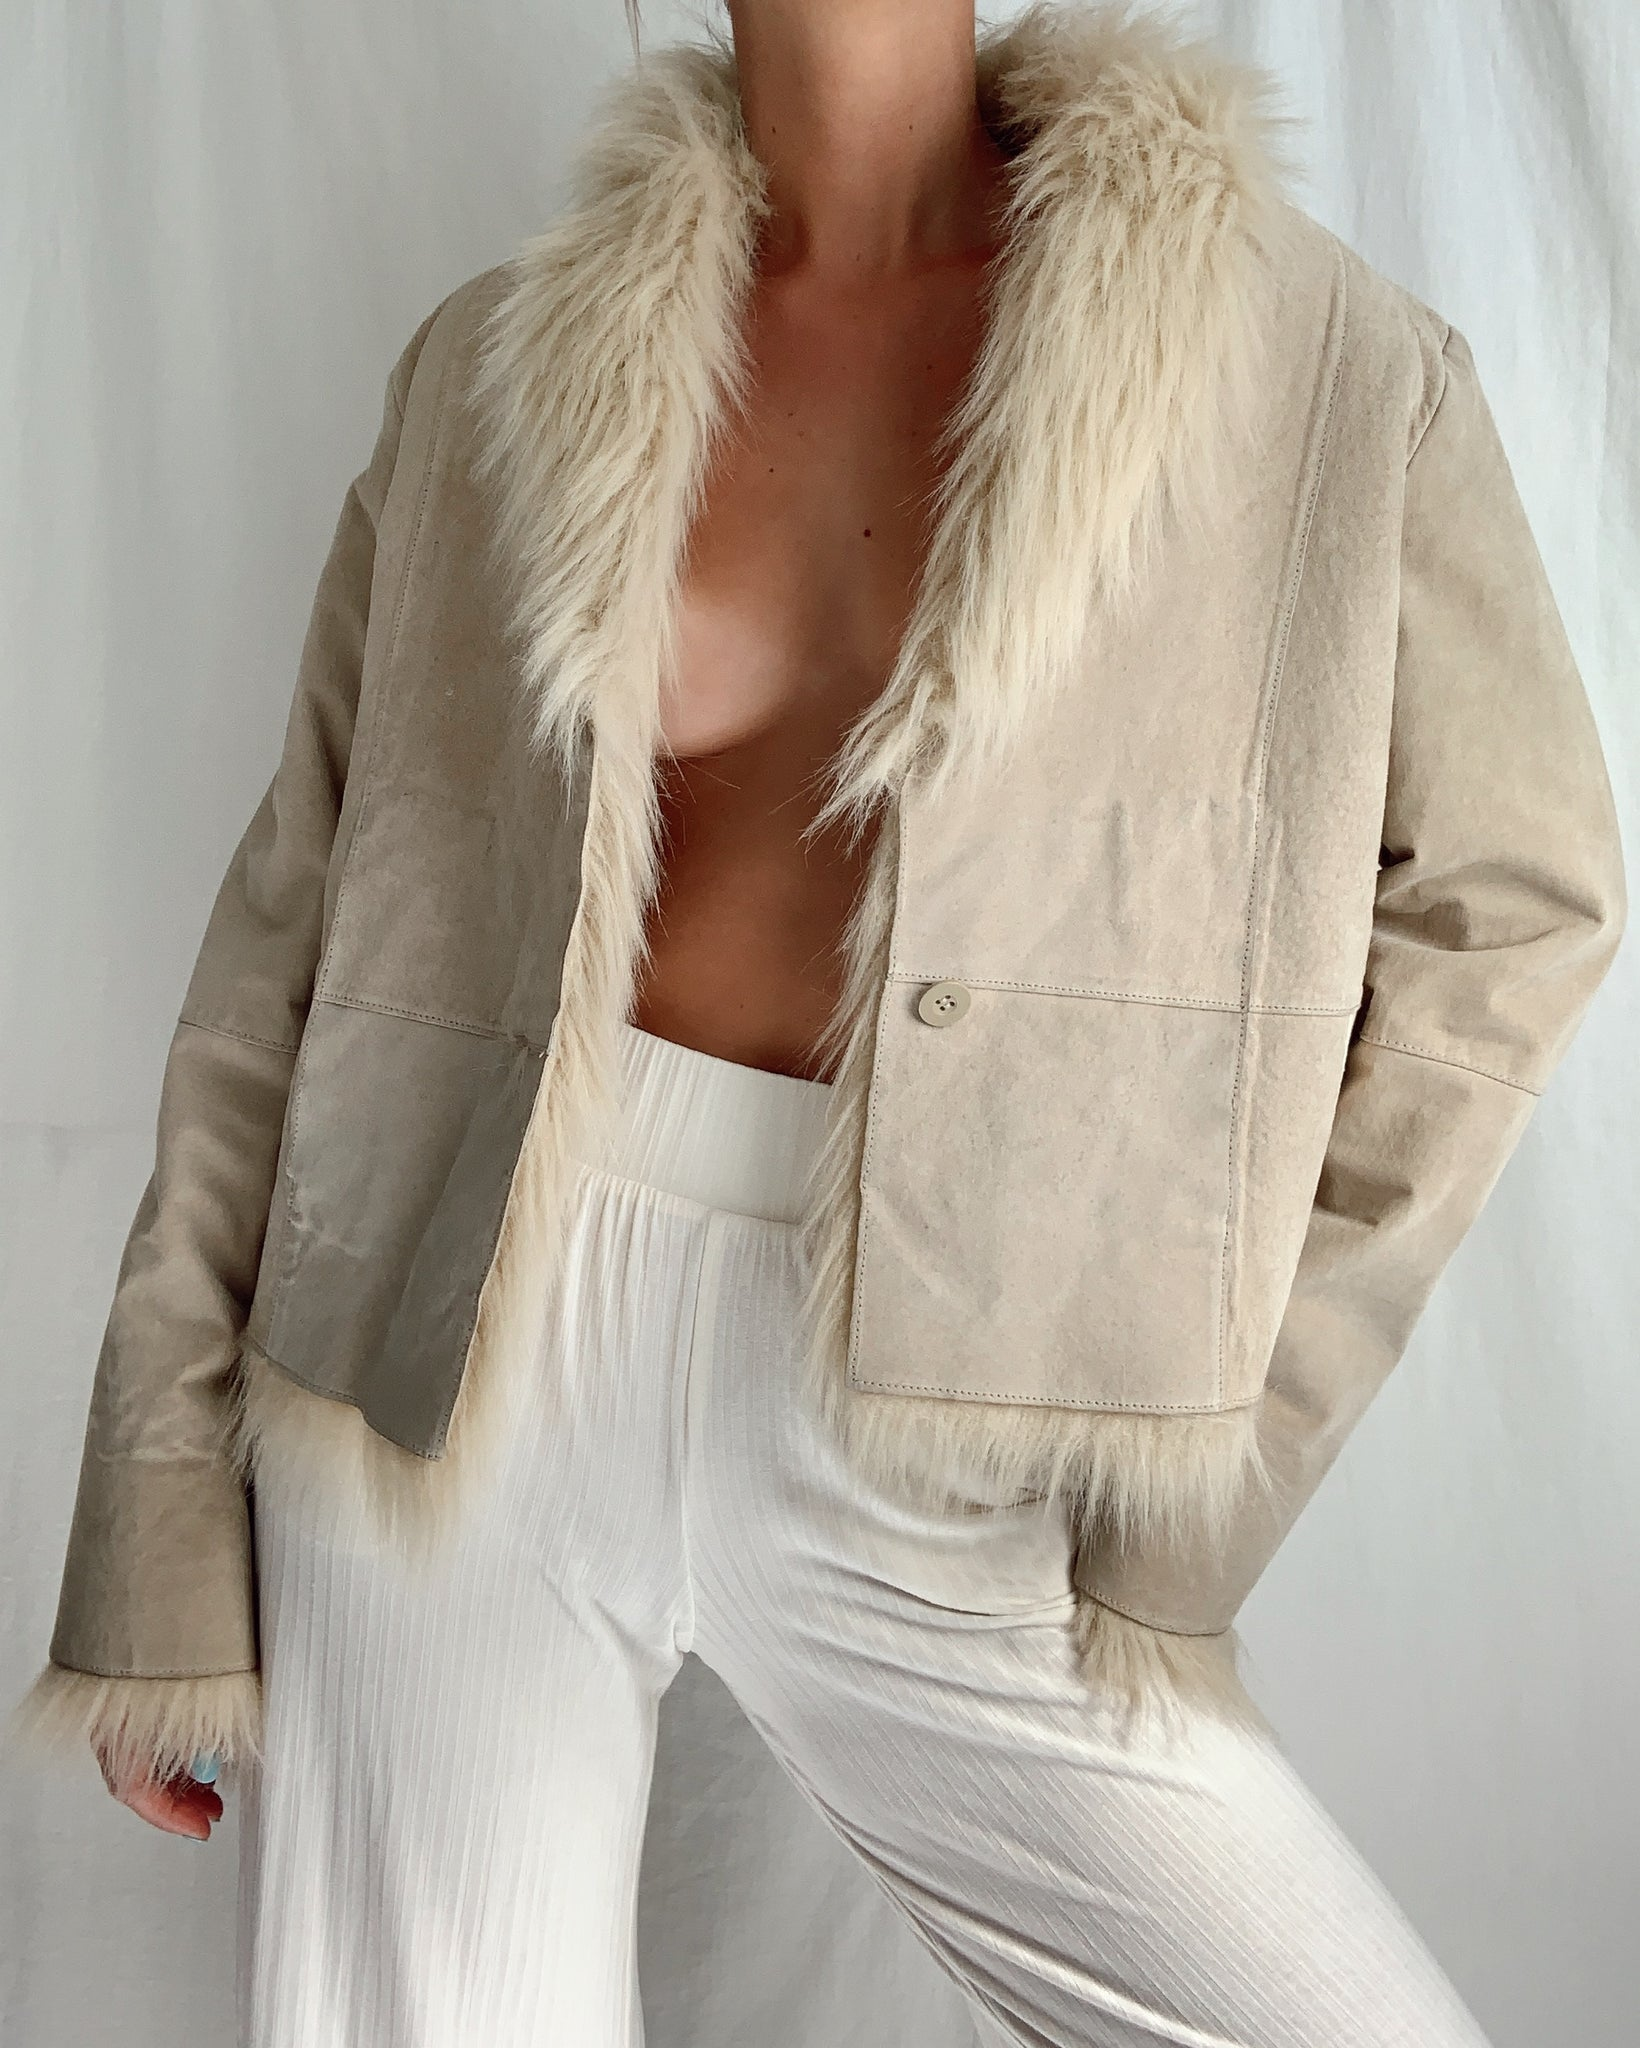 Vintage Faux Fur Leather Jacket (S)